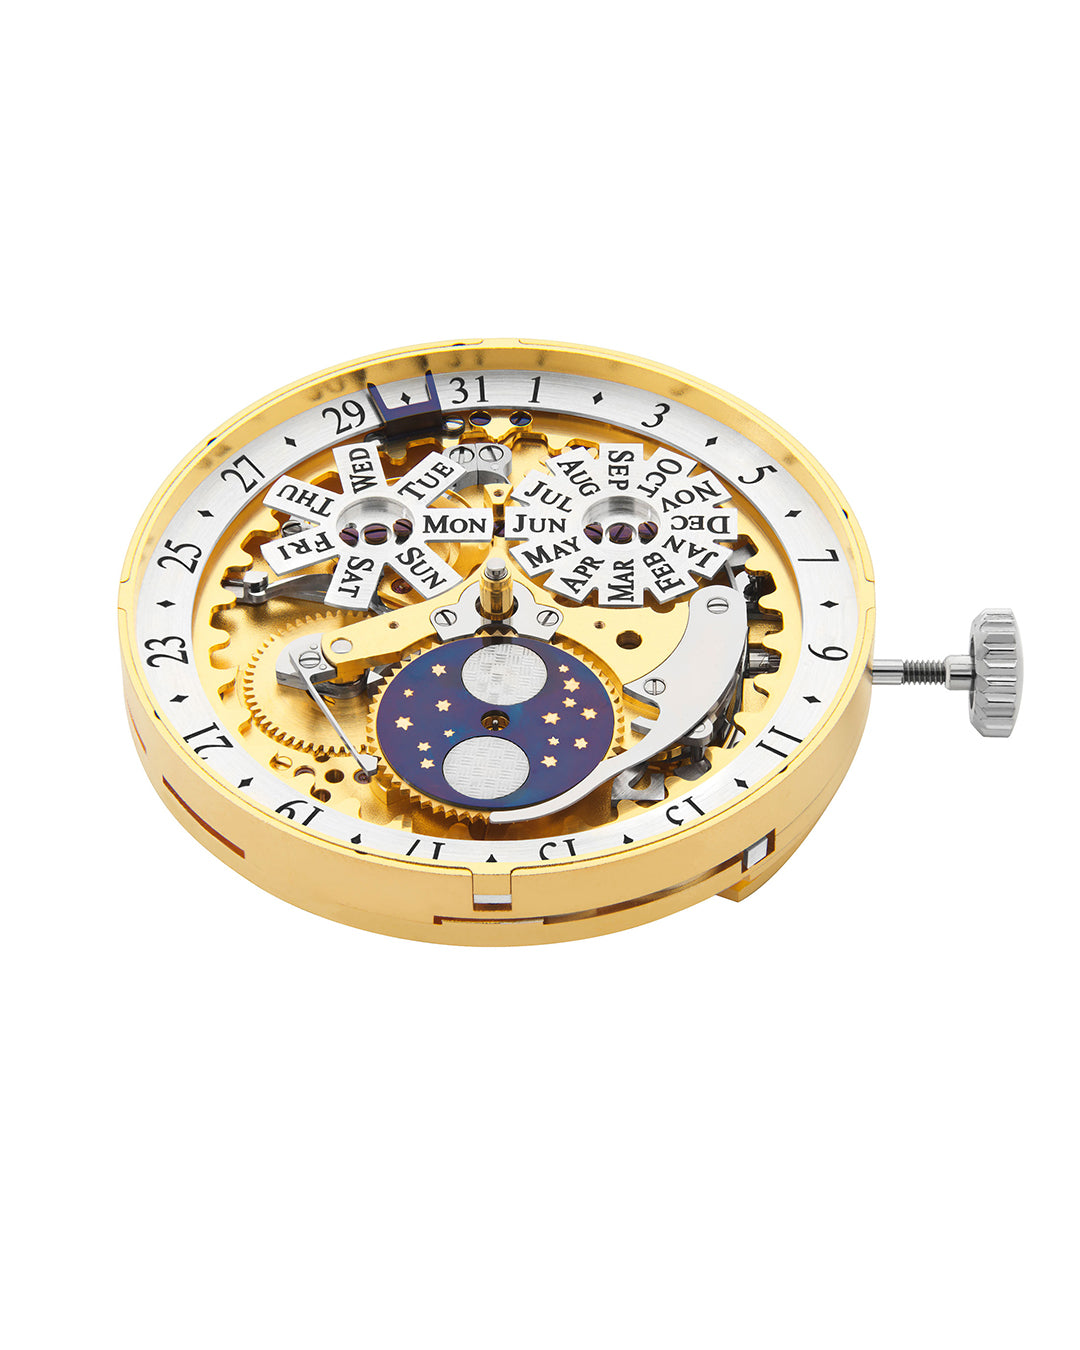 Roger W. Smith watchmaker Series 4 movement for A Collected Man London